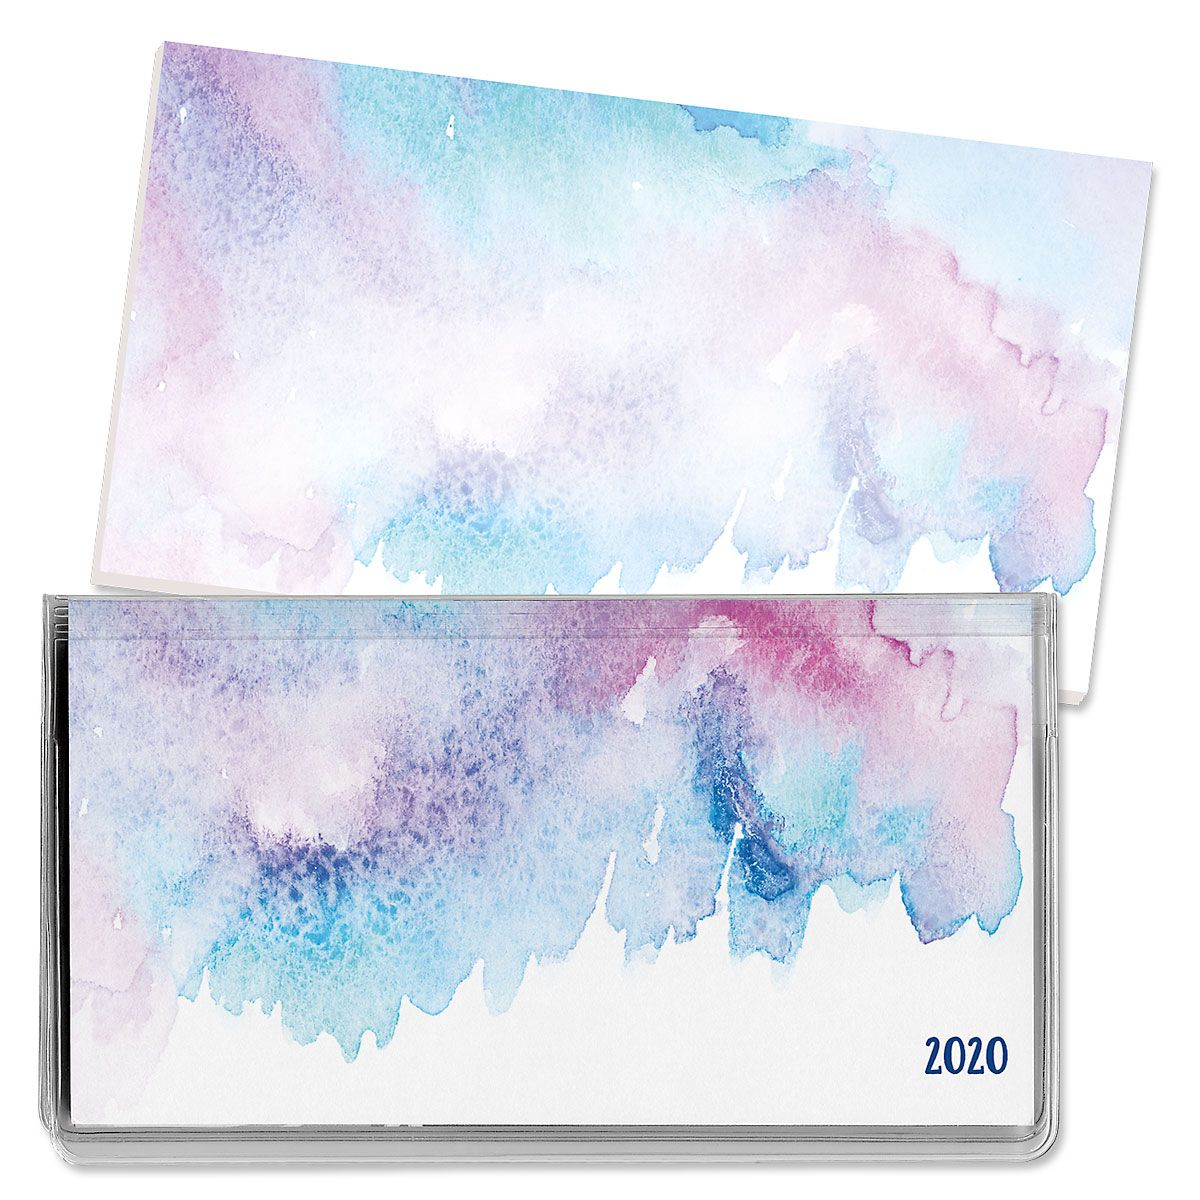 2020 Brush Pocket Calendar